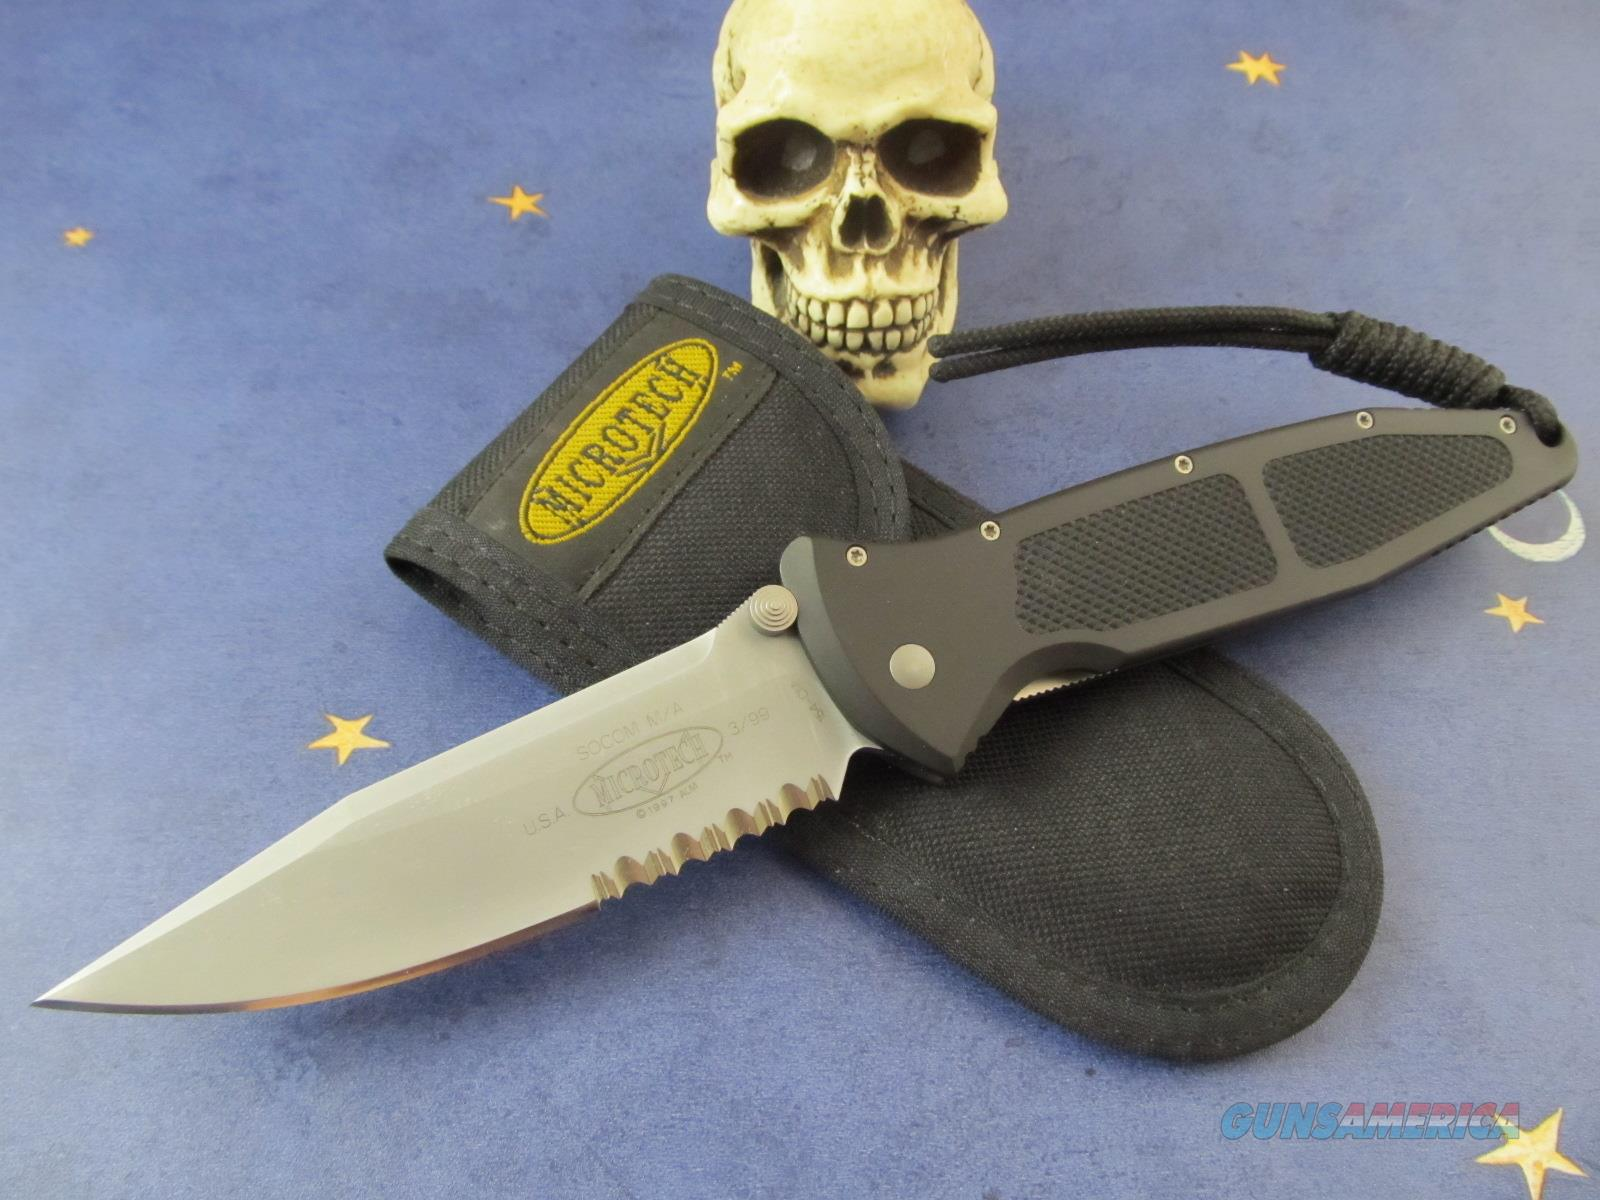 Microtech Knives SOCOM Full Size Made in Vero Beach FL  Non-Guns > Knives/Swords > Knives > Folding Blade > Hand Made